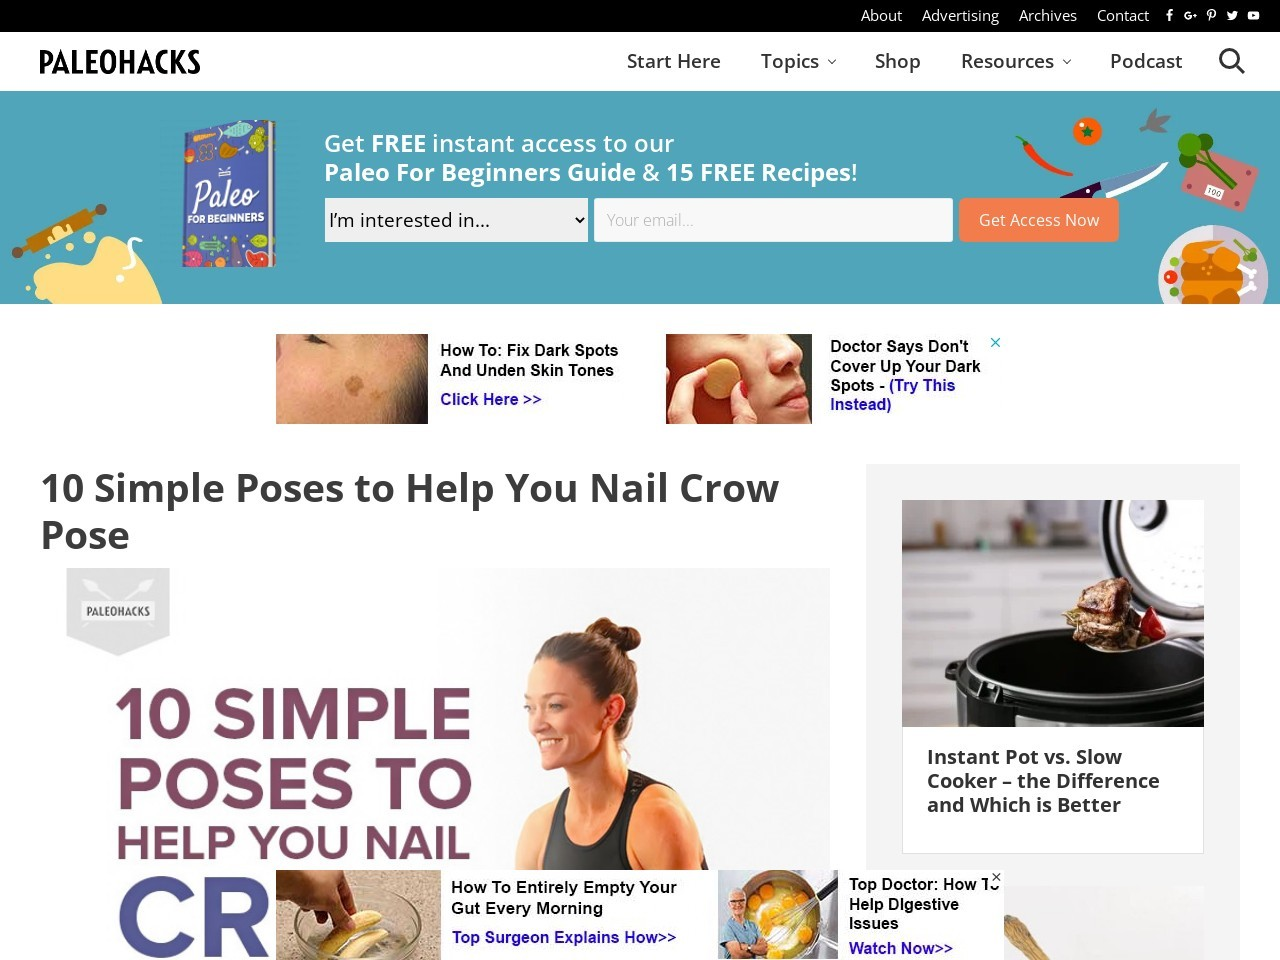 10 Simple Poses to Help You Nail Crow Pose